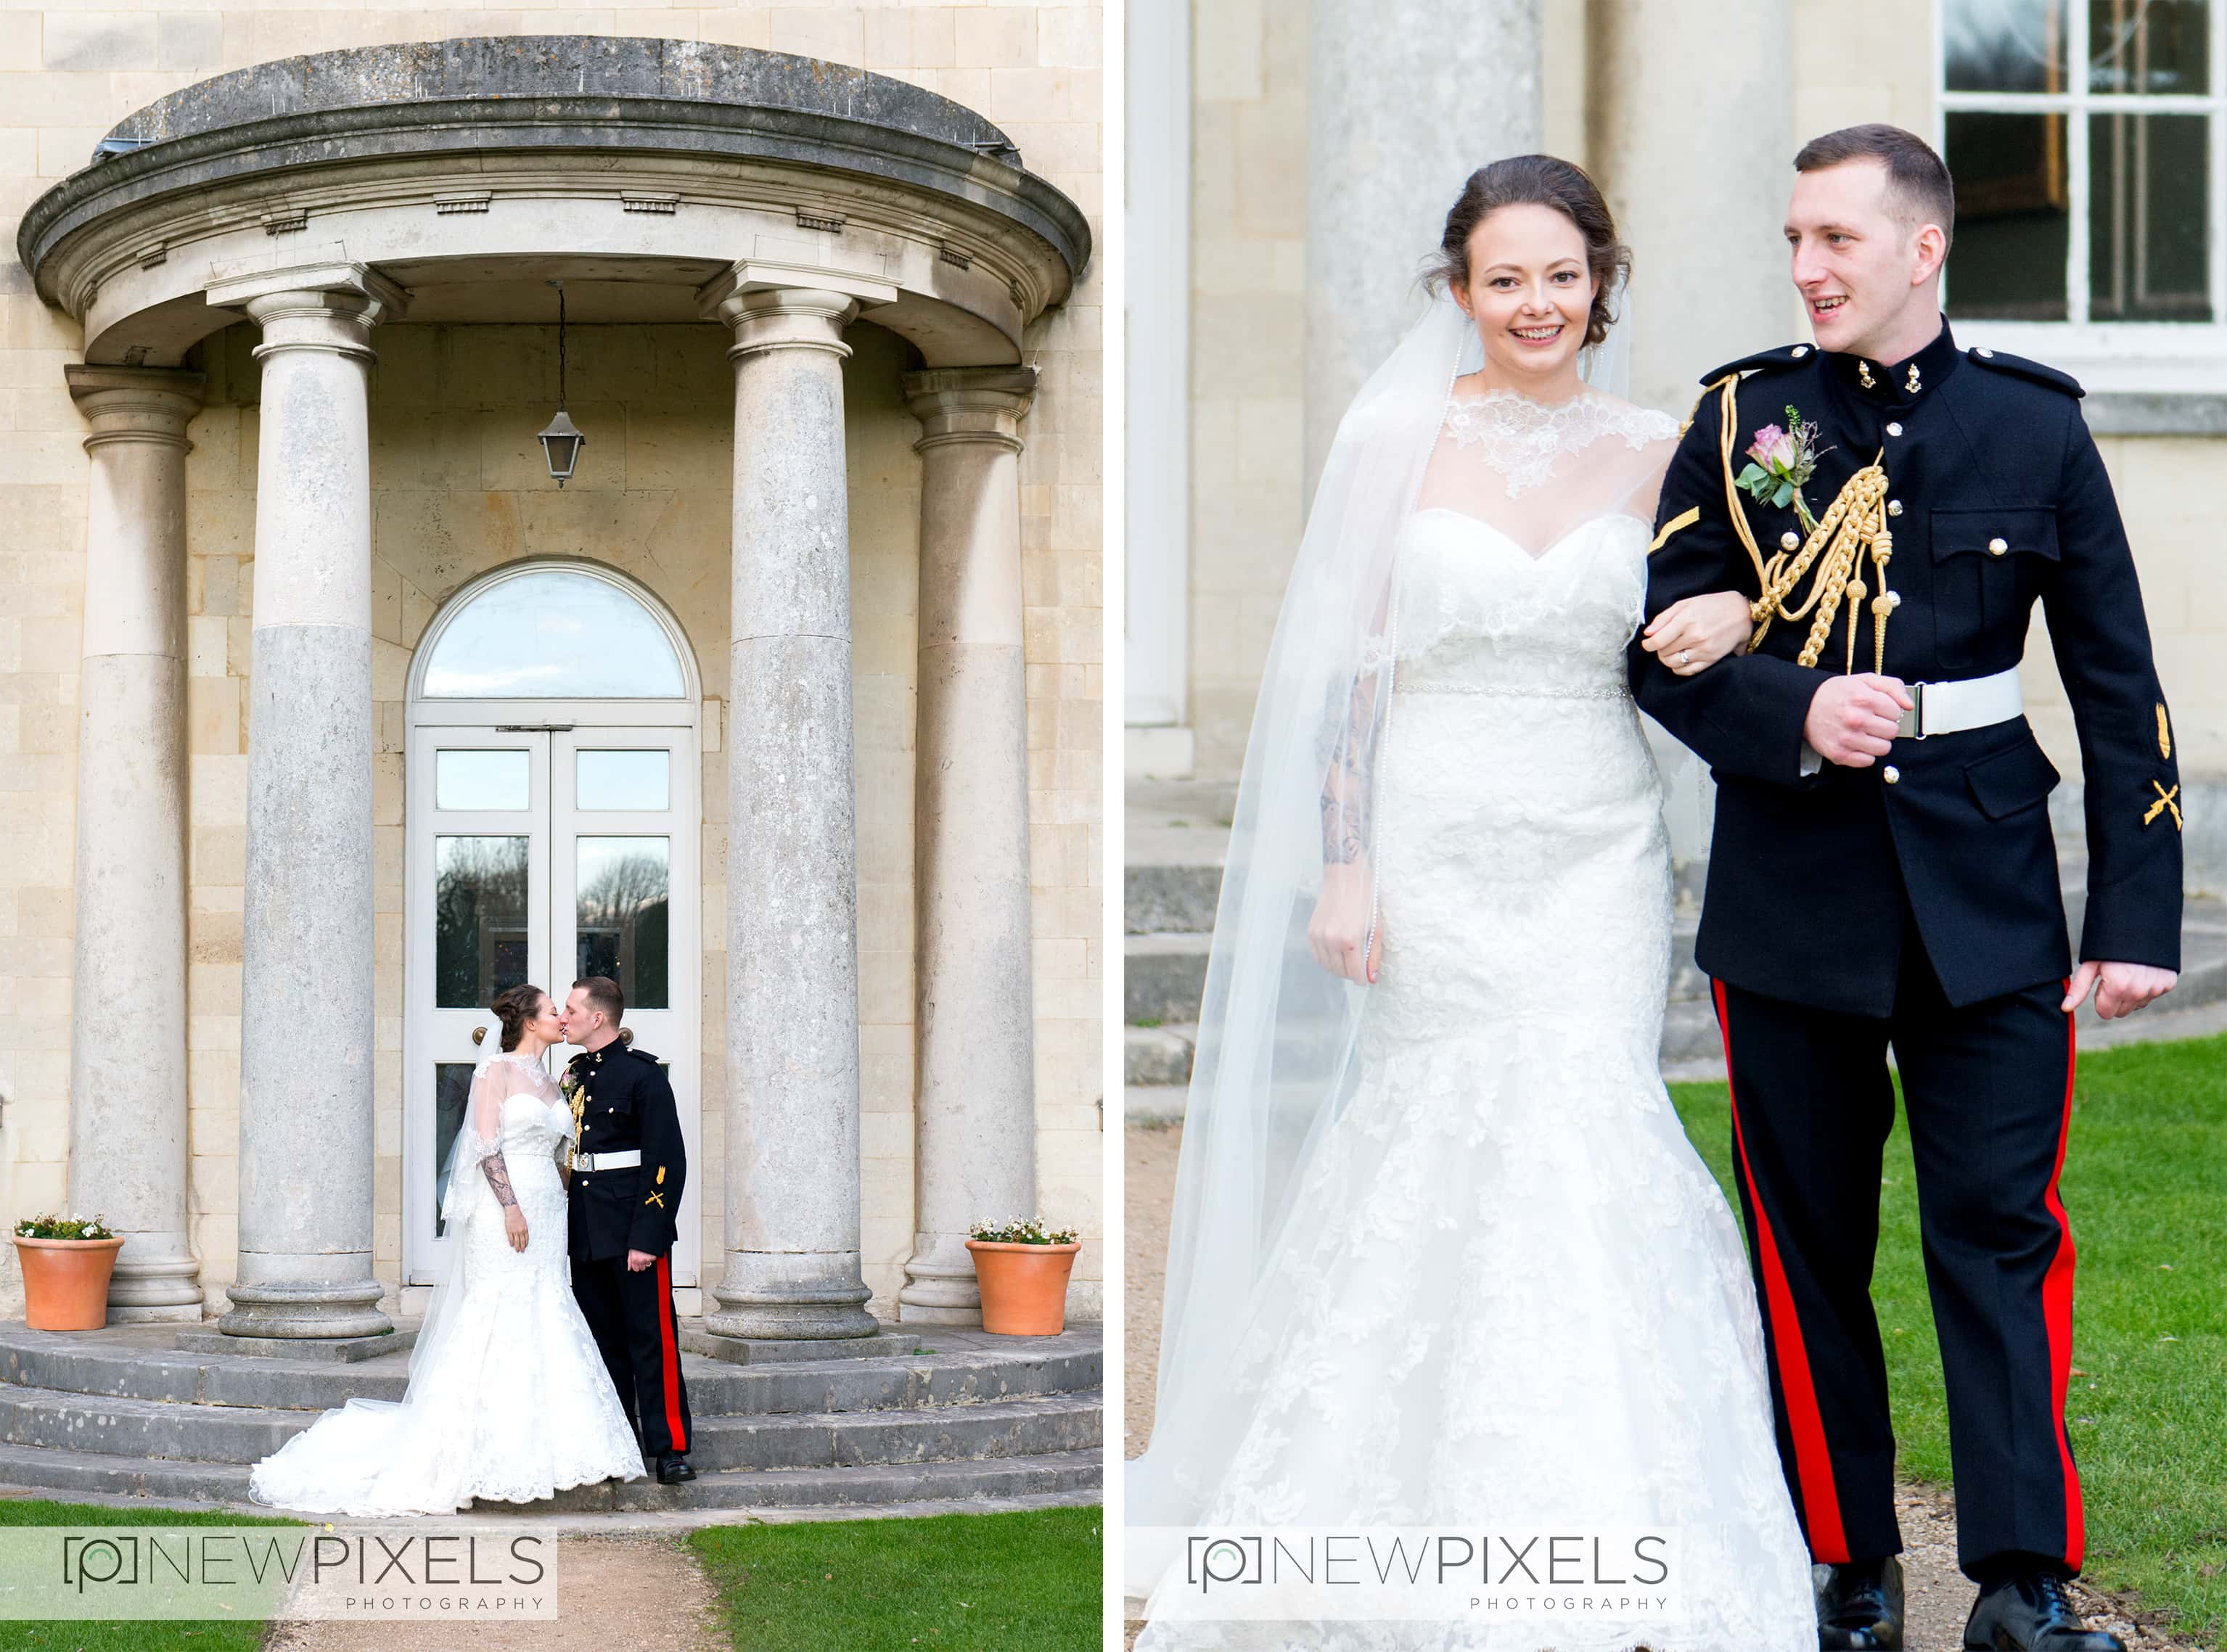 Wedding Ceremony at Hitchin Priory